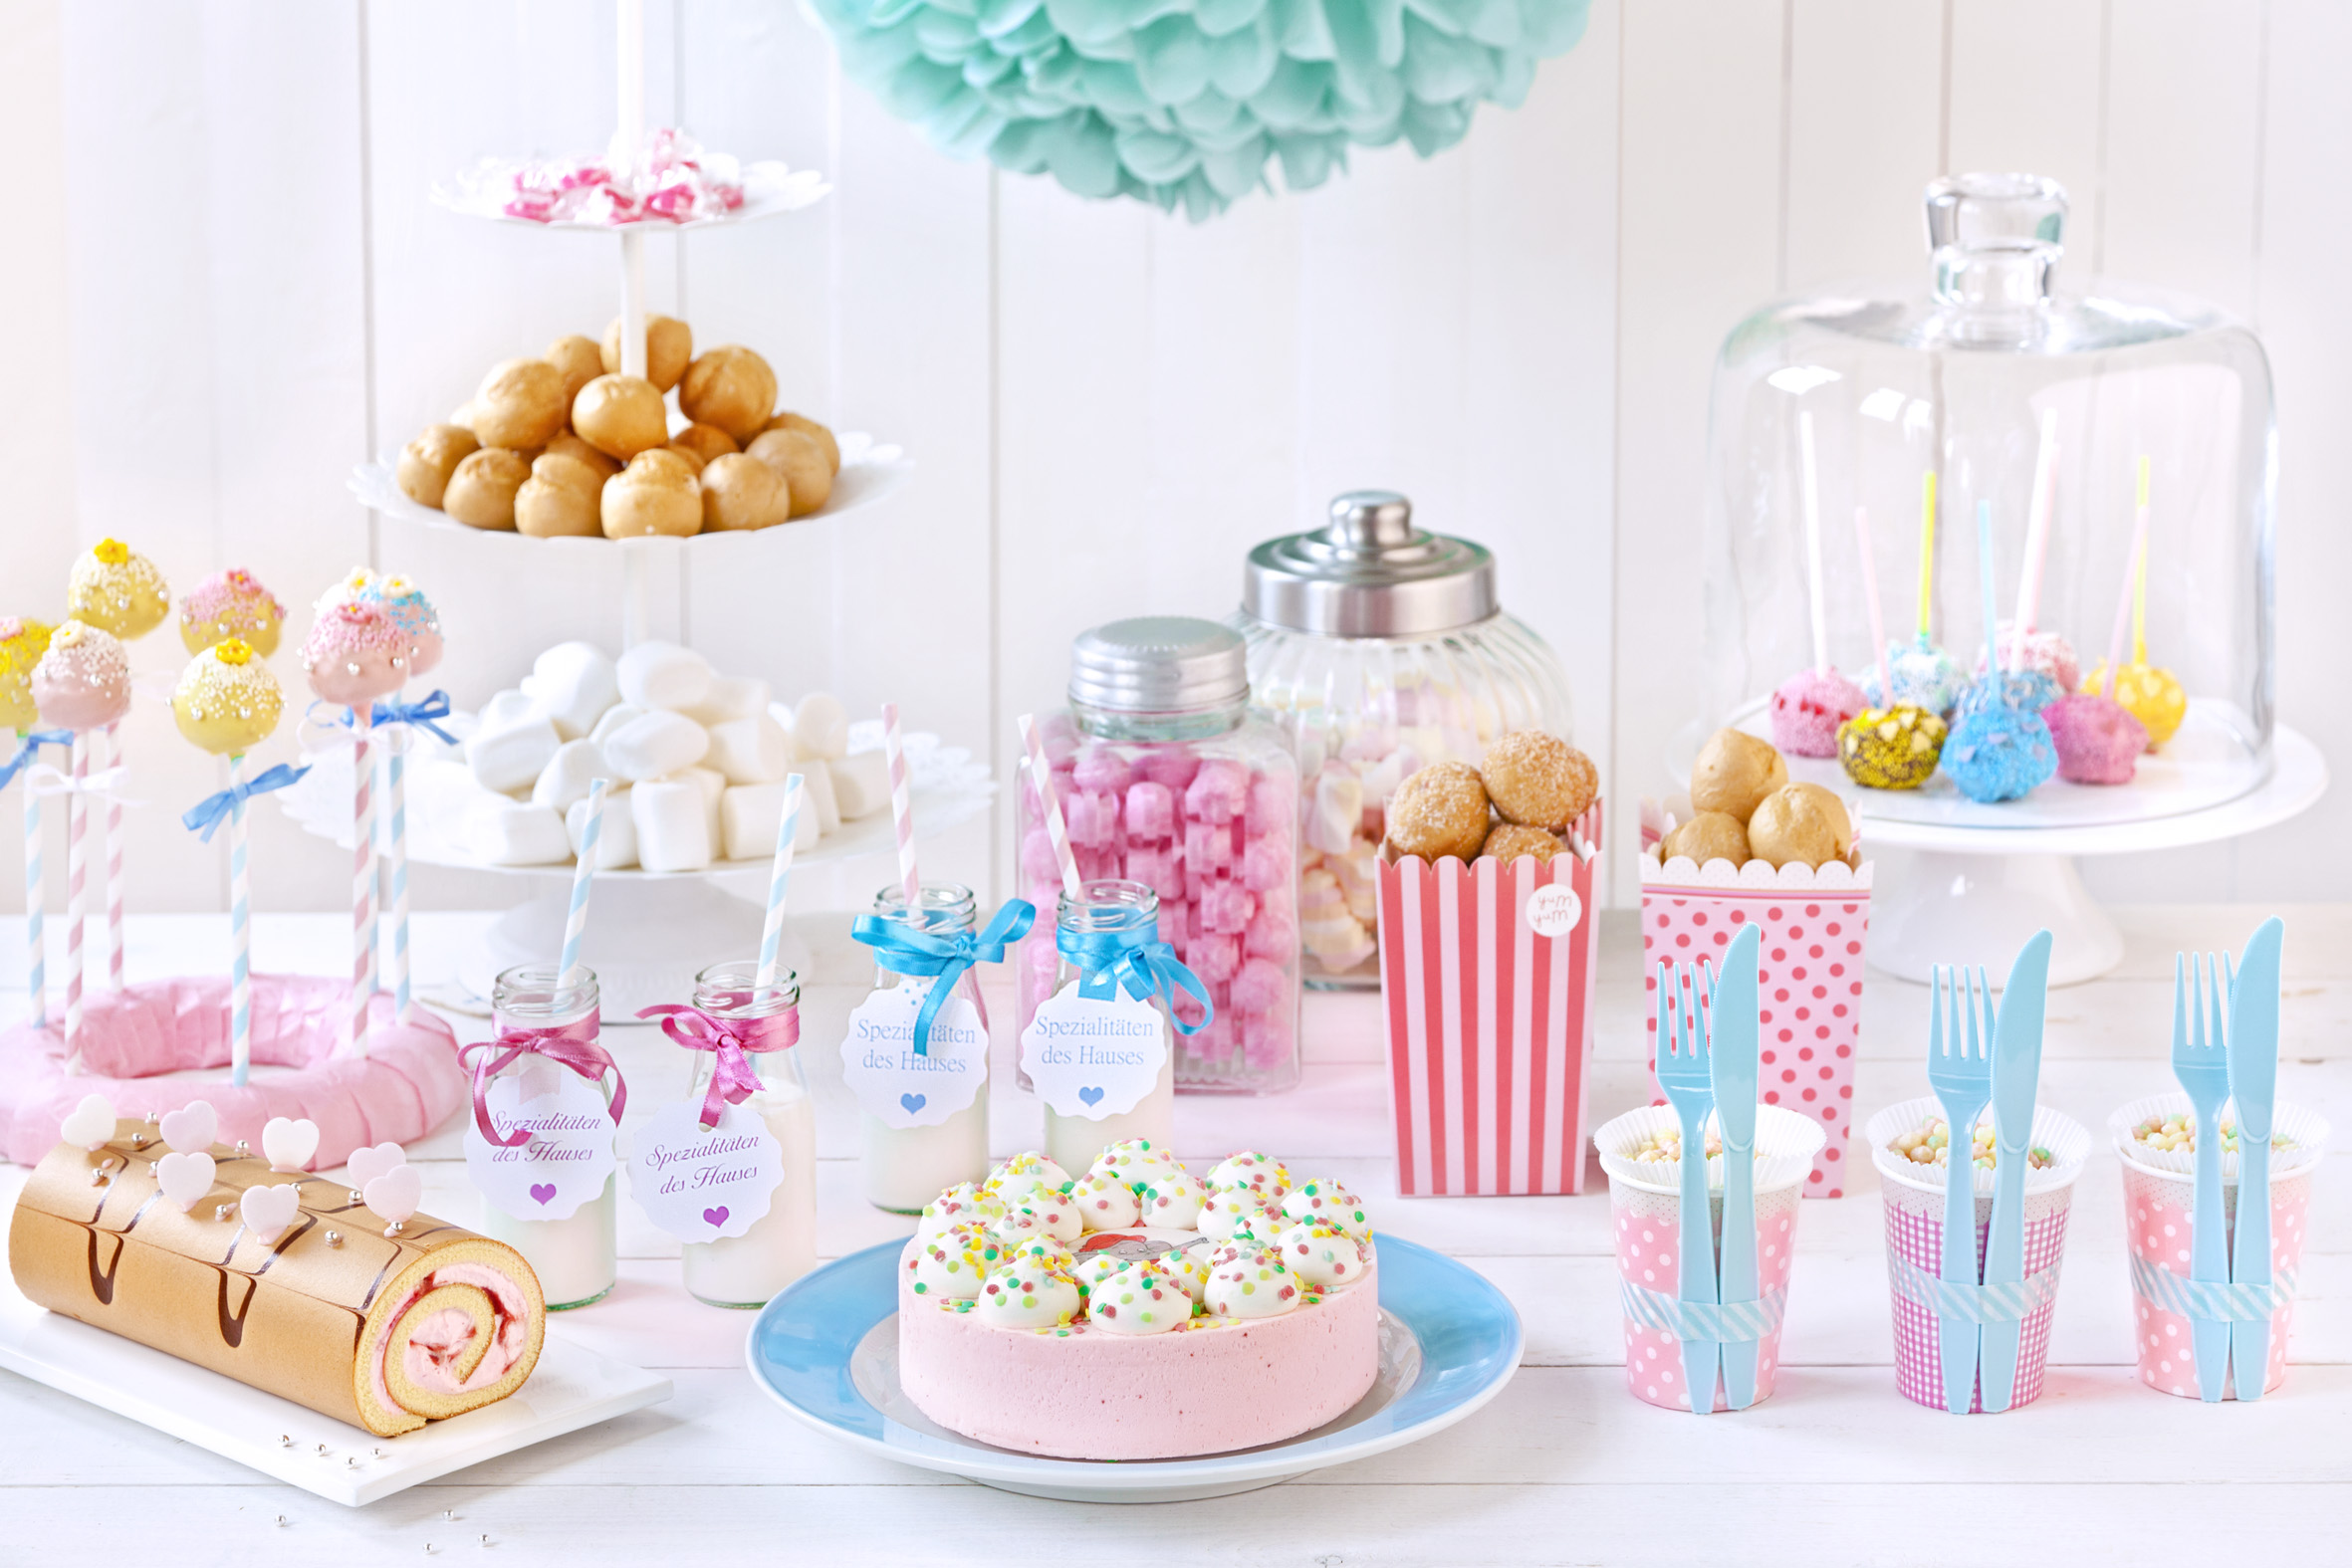 Babyparty deko babyparty ideen s e babyparty - Baby shower party ideen ...